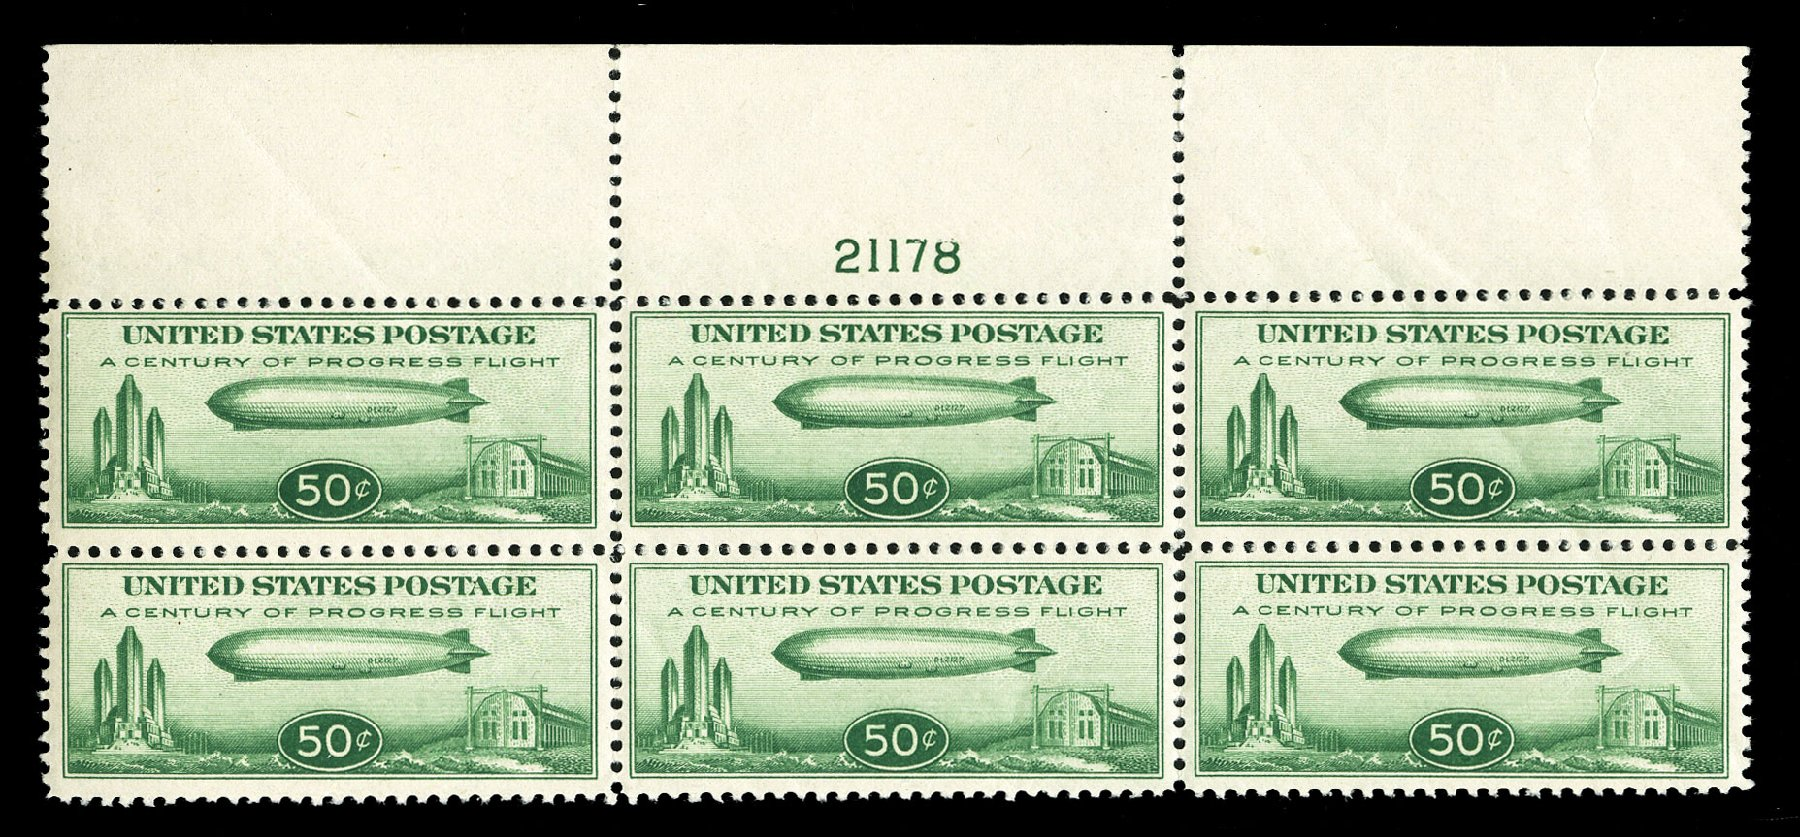 Costs of US Stamp Scott Catalogue # C18 - 50c 1933 Air Graf Zeppelin. Cherrystone Auctions, Jul 2015, Sale 201507, Lot 2187